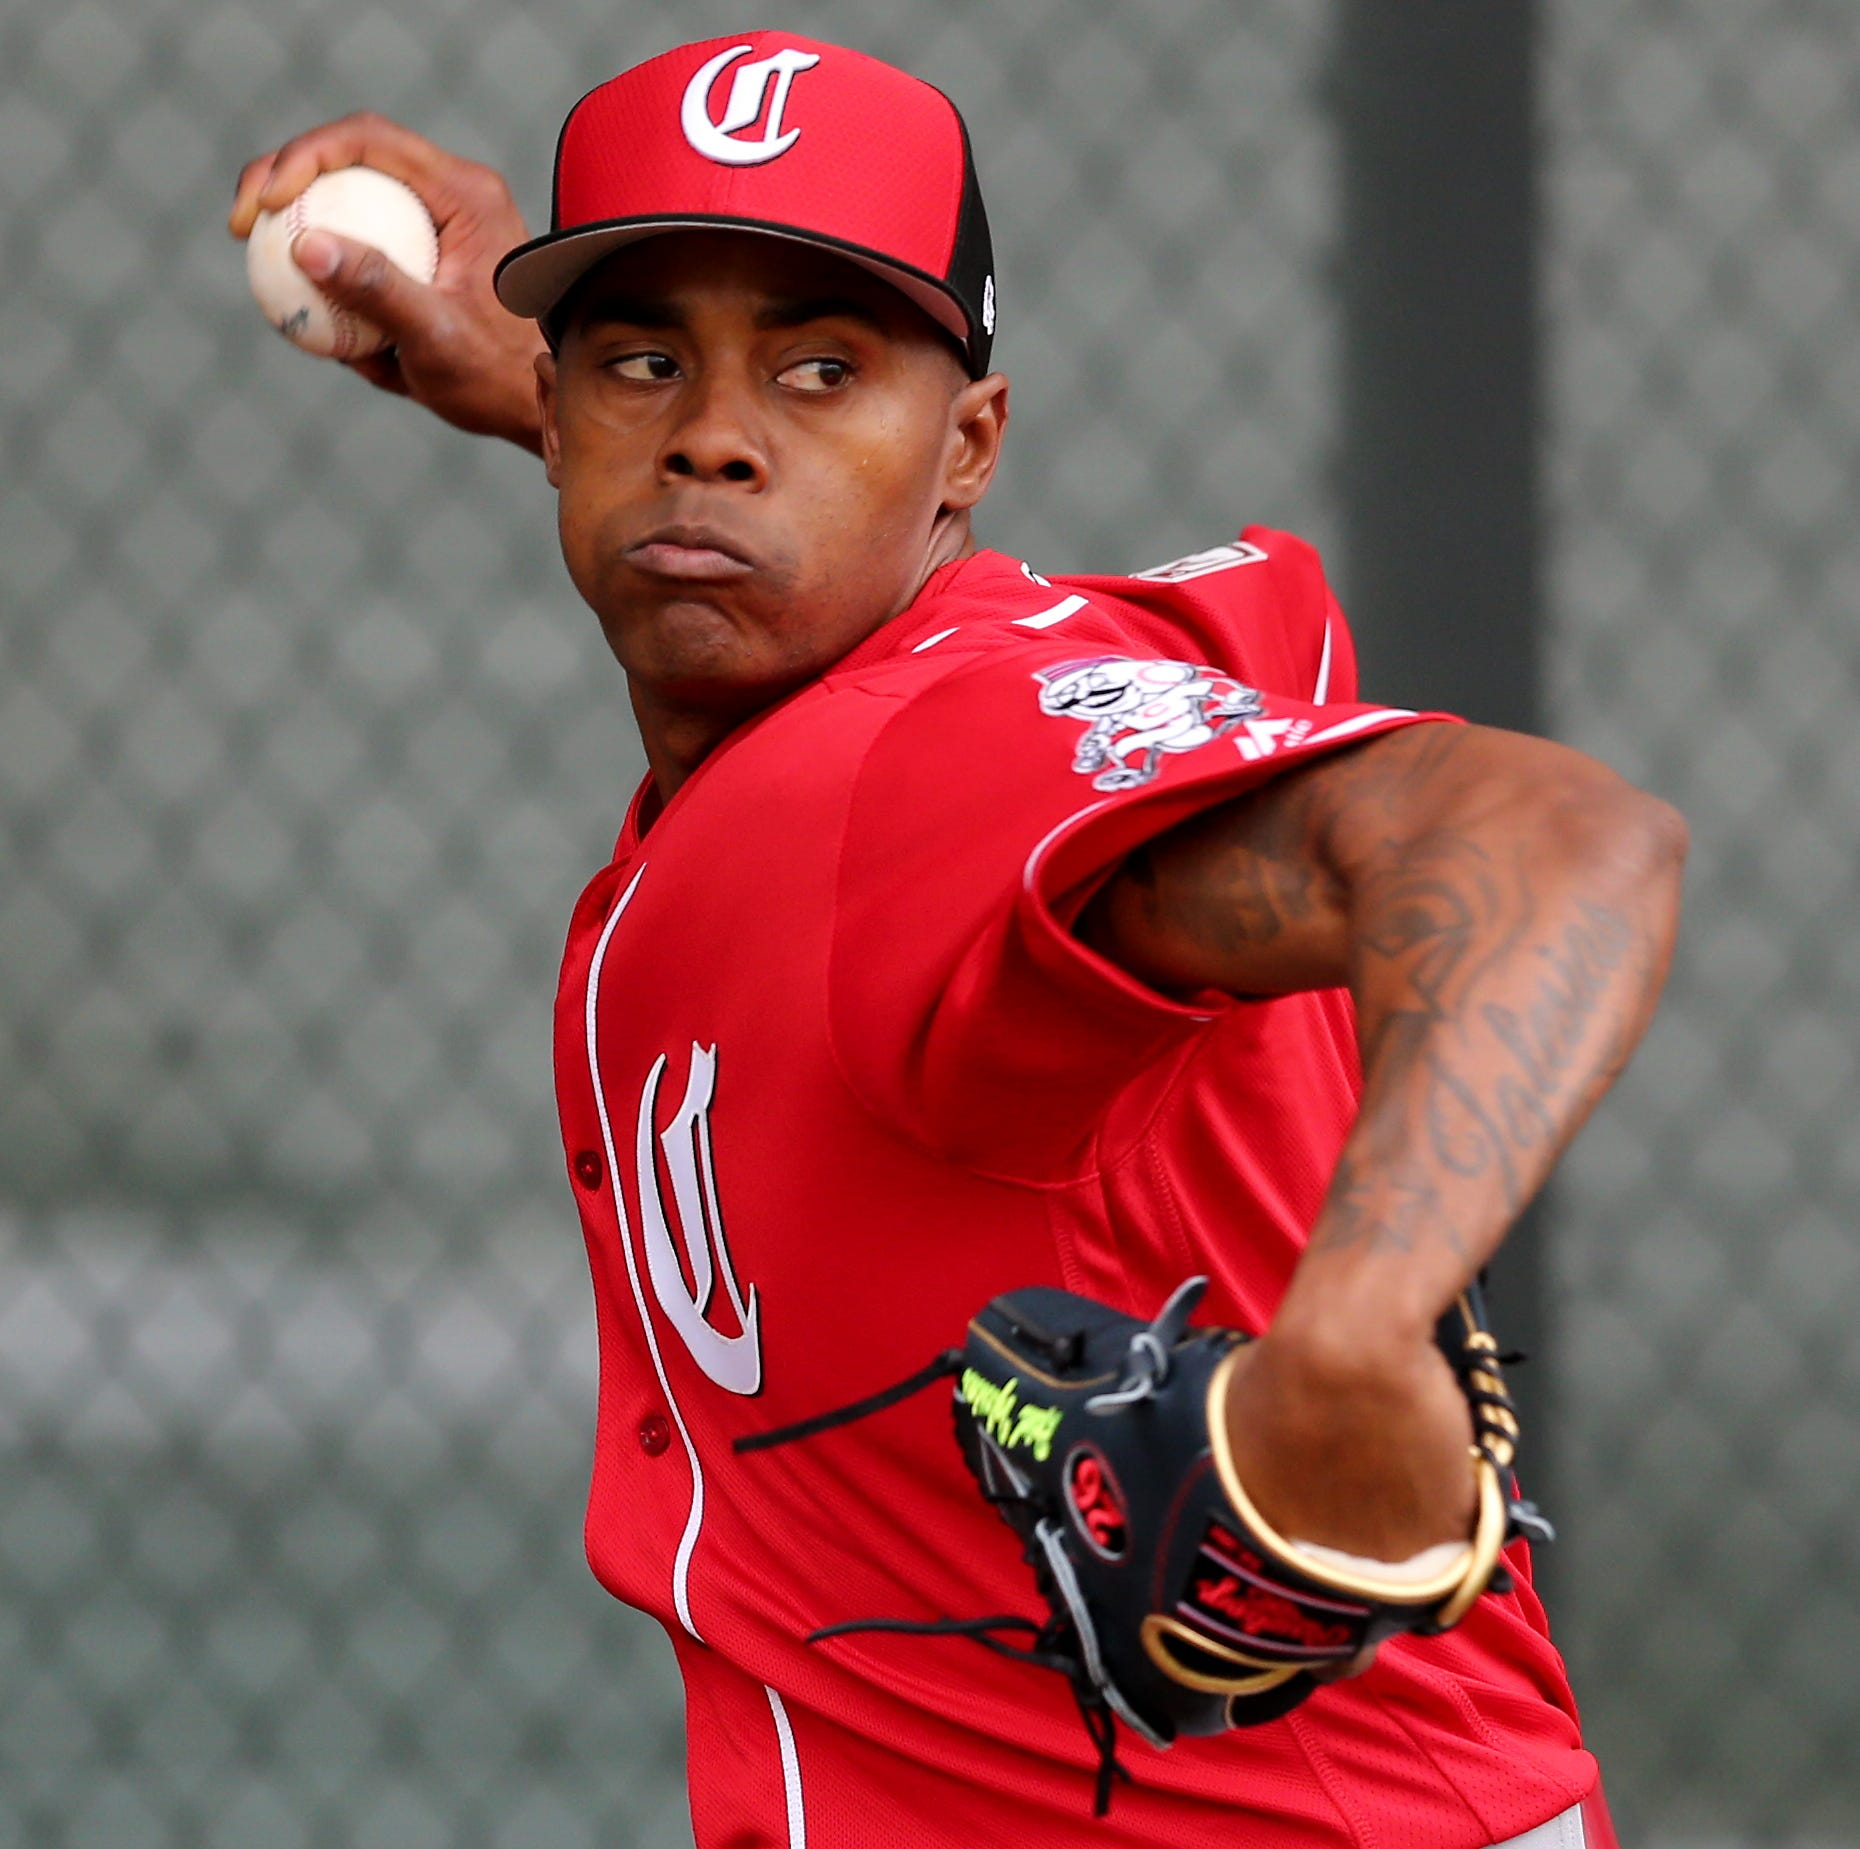 Cincinnati Reds plan to use Raisel Iglesias when necessary, not always as closer